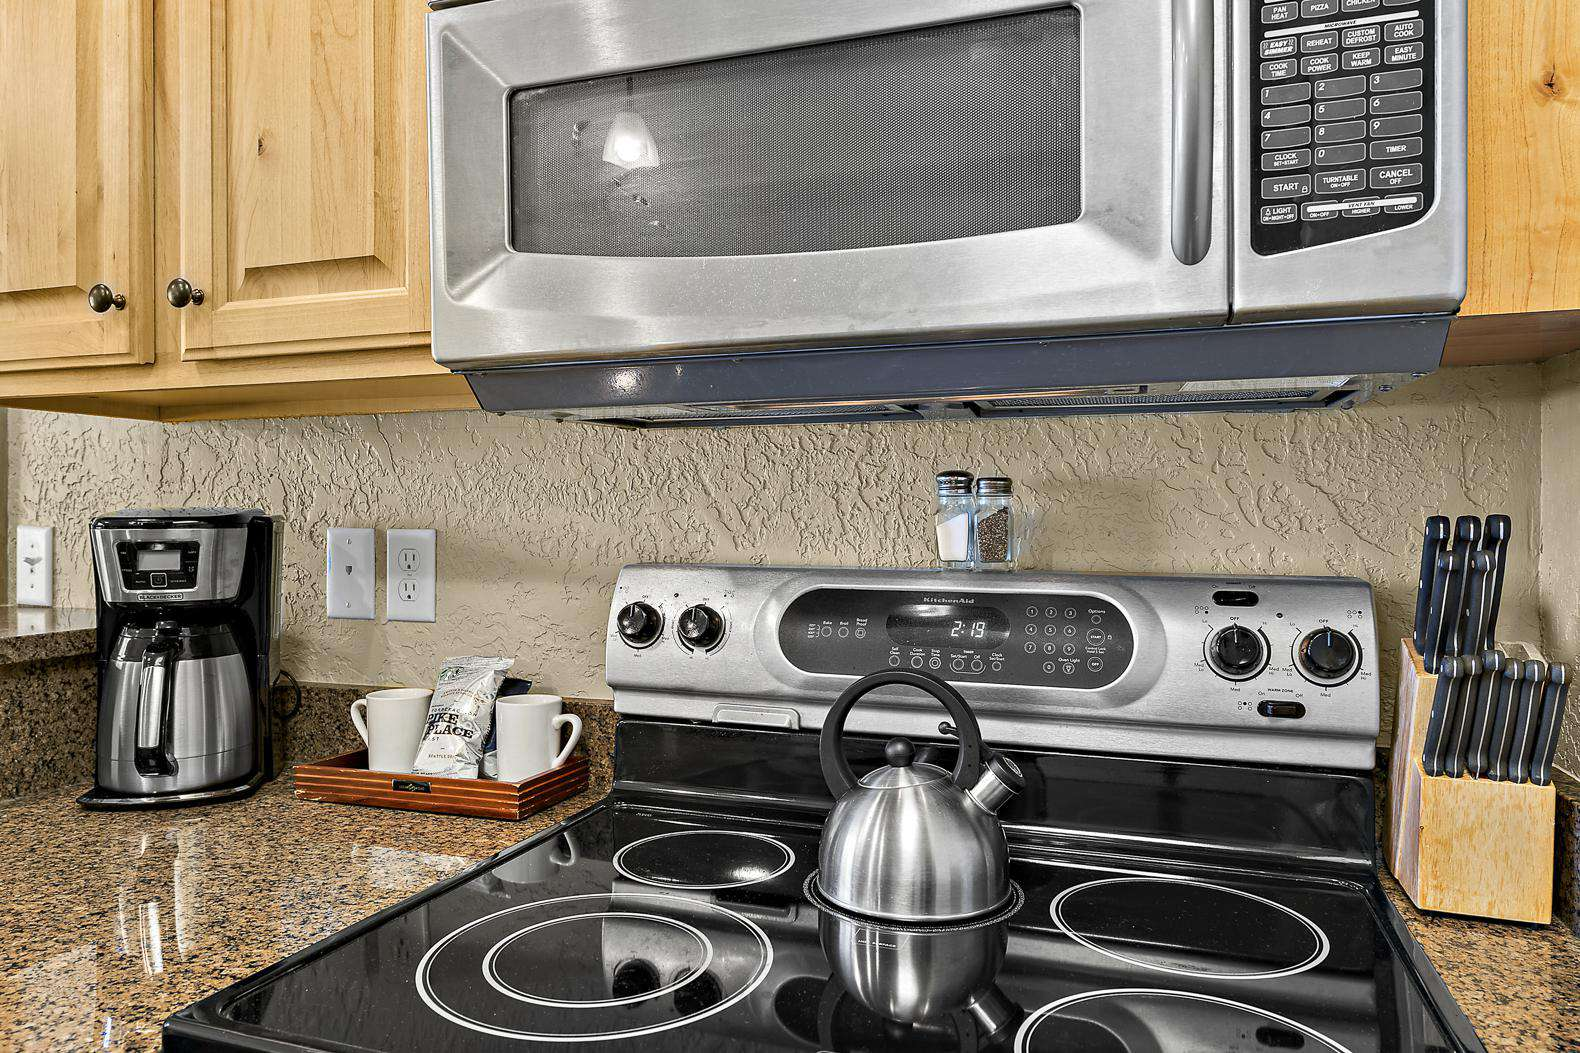 Oven/Range, microwave, and coffee maker